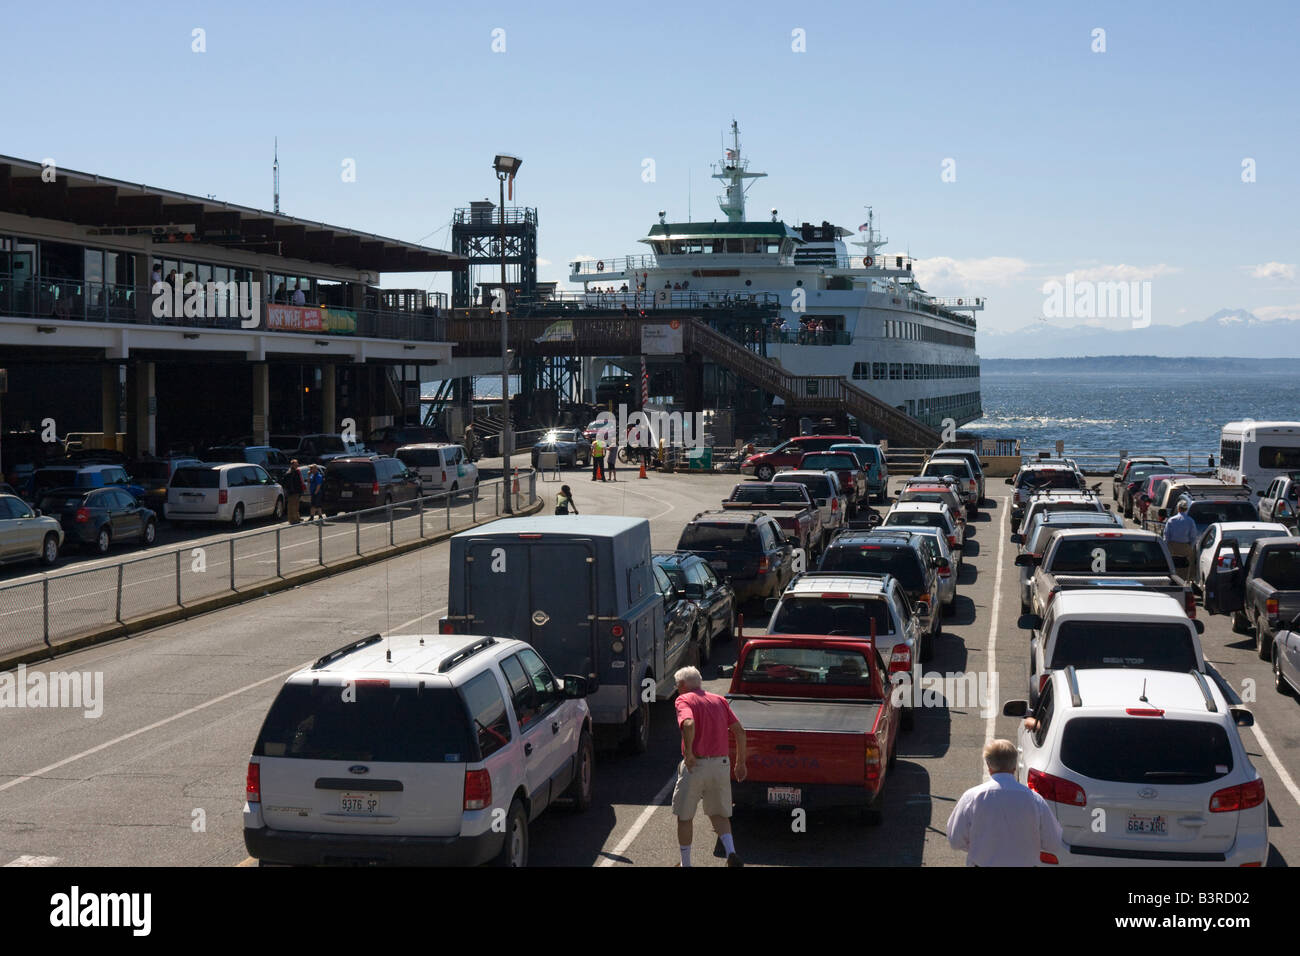 Cars waiting for Washington State ferry at Seattle Ferry Terminal Seattle WA USA full car park - Stock Image